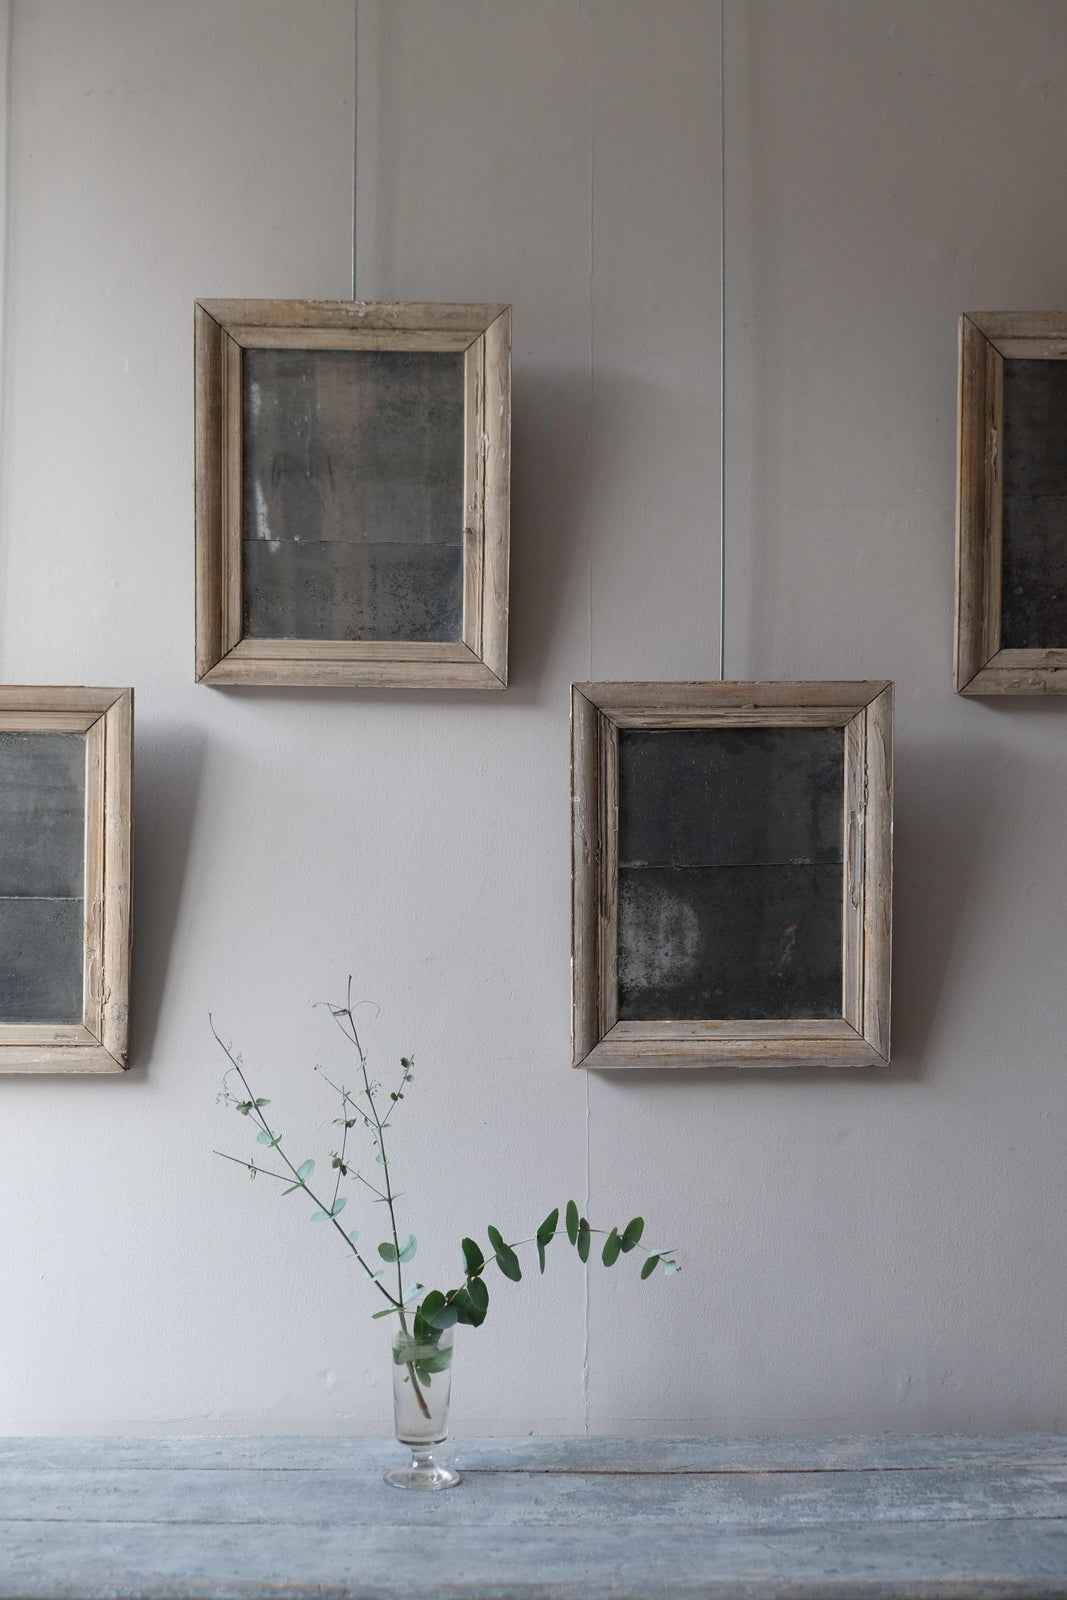 19th C. Wooden Frames with 19th C. Glass